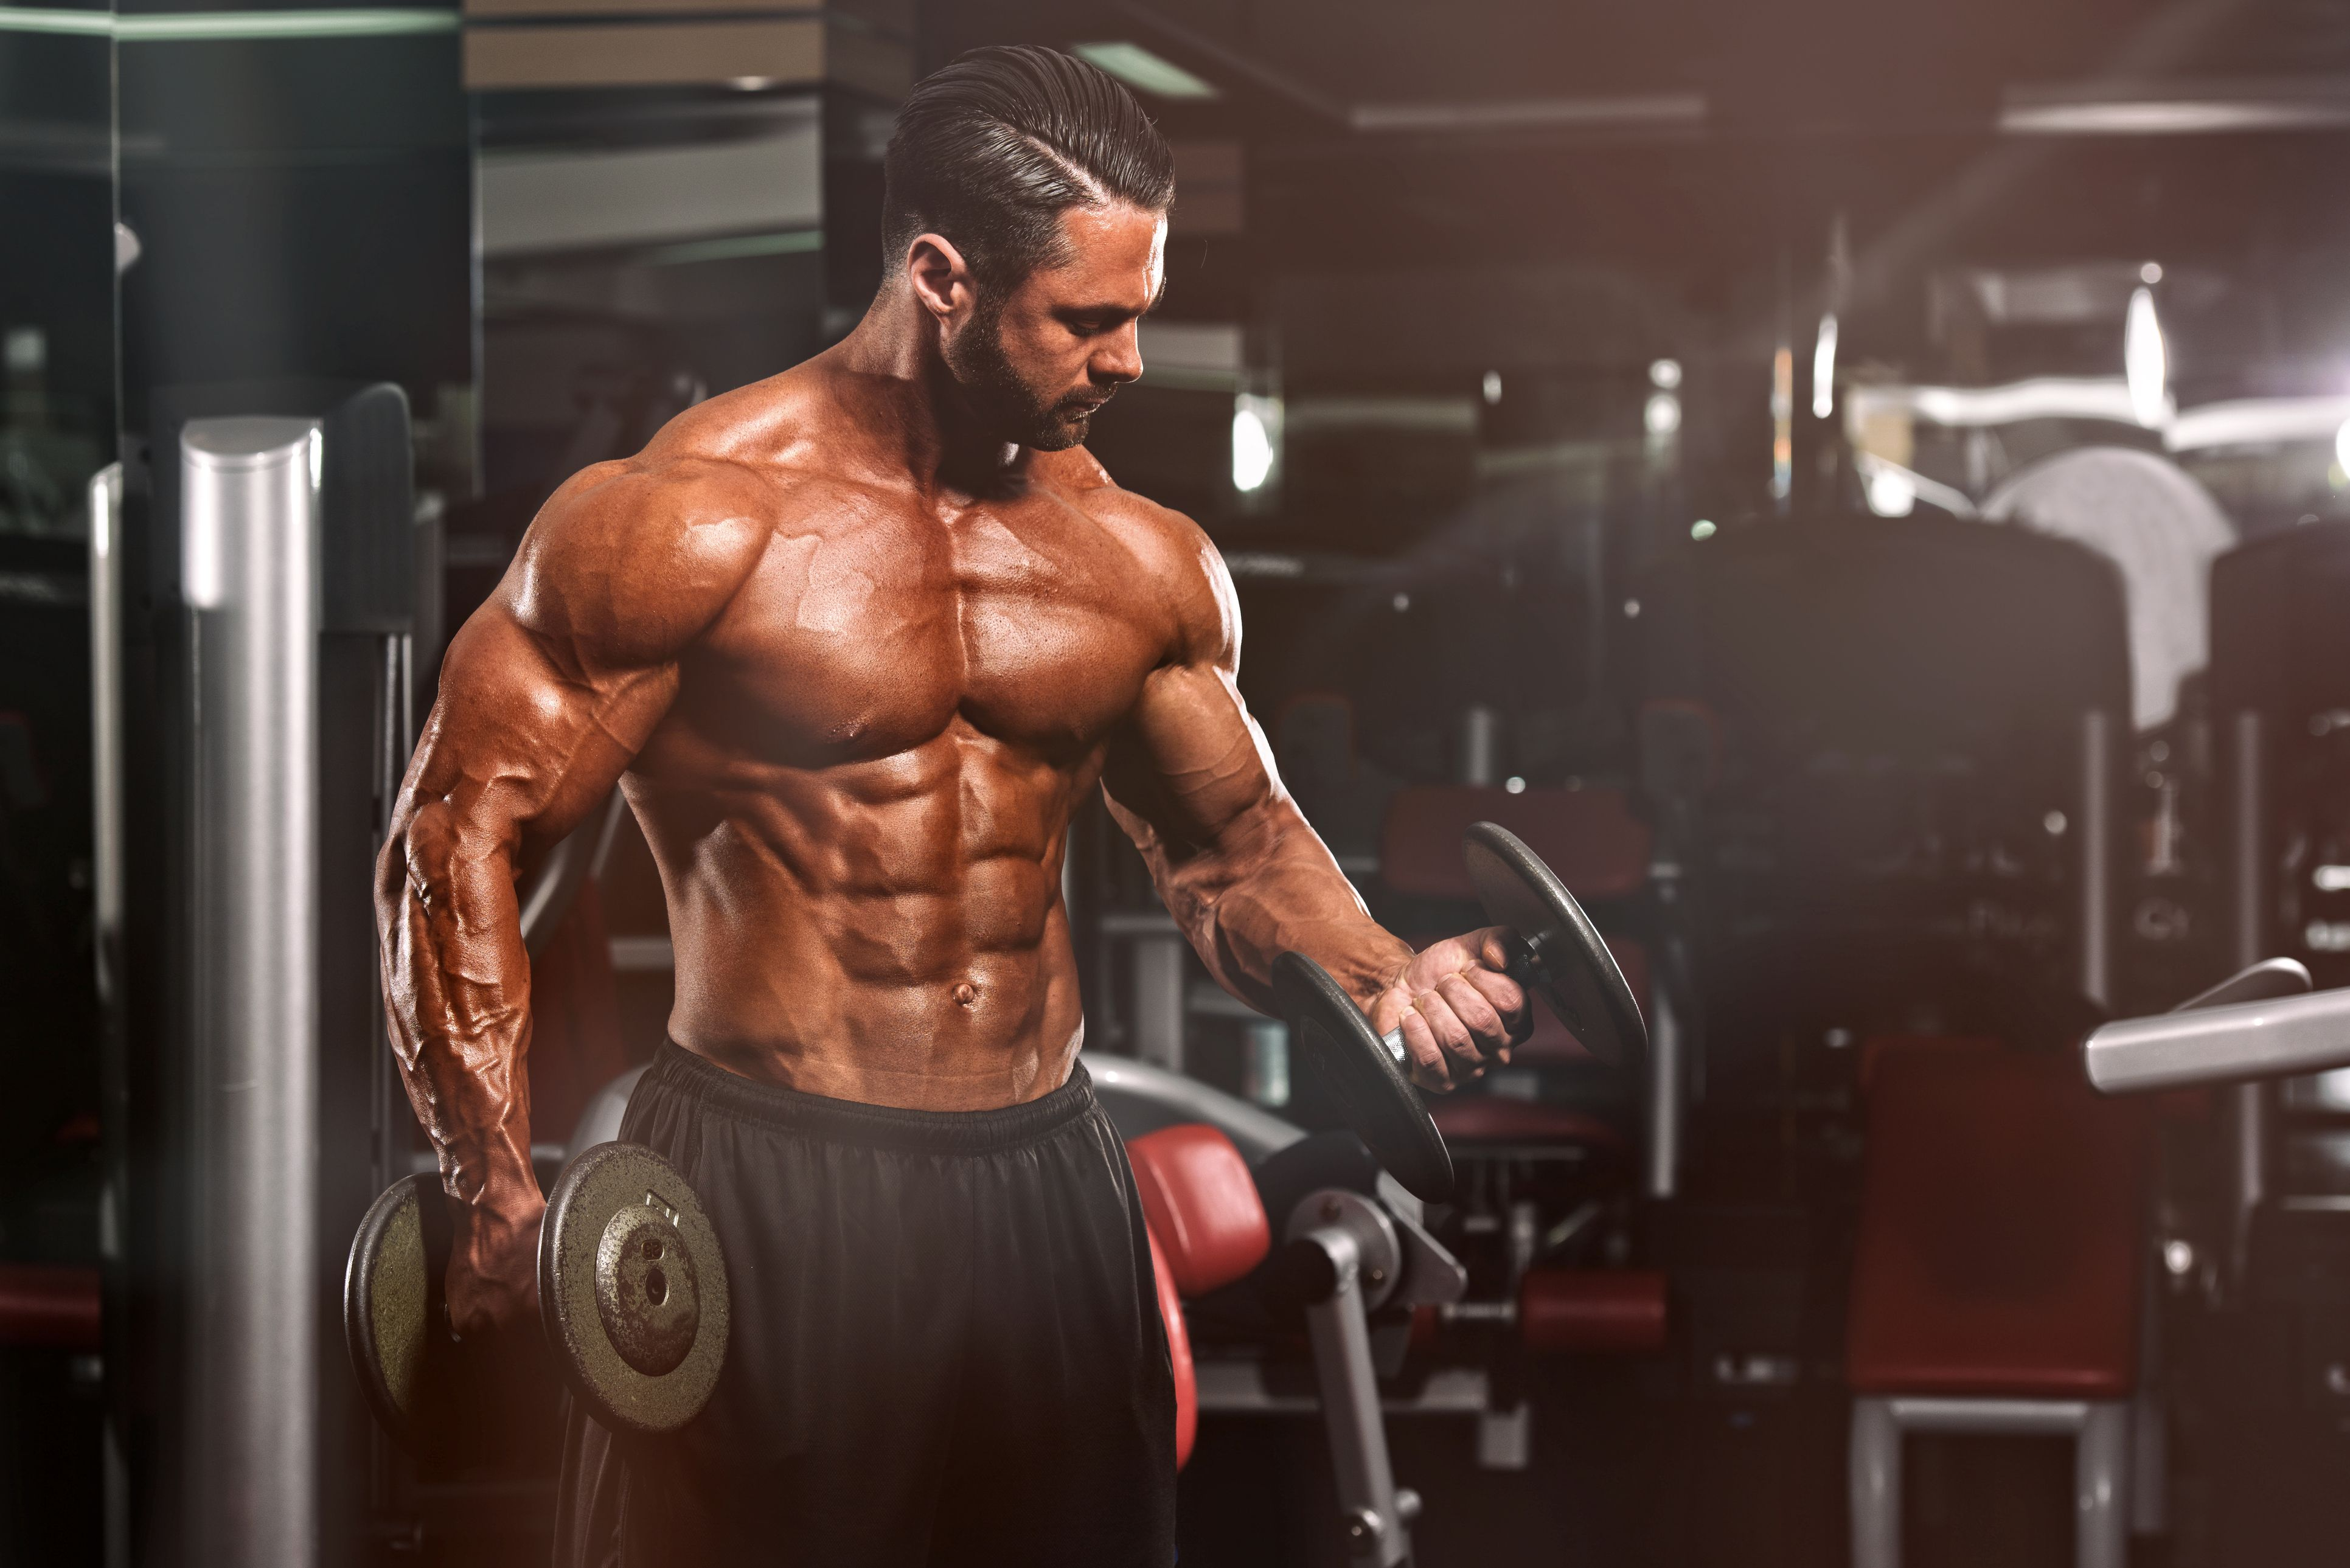 How You Can Use Hypertrophy to Grow Your Muscles